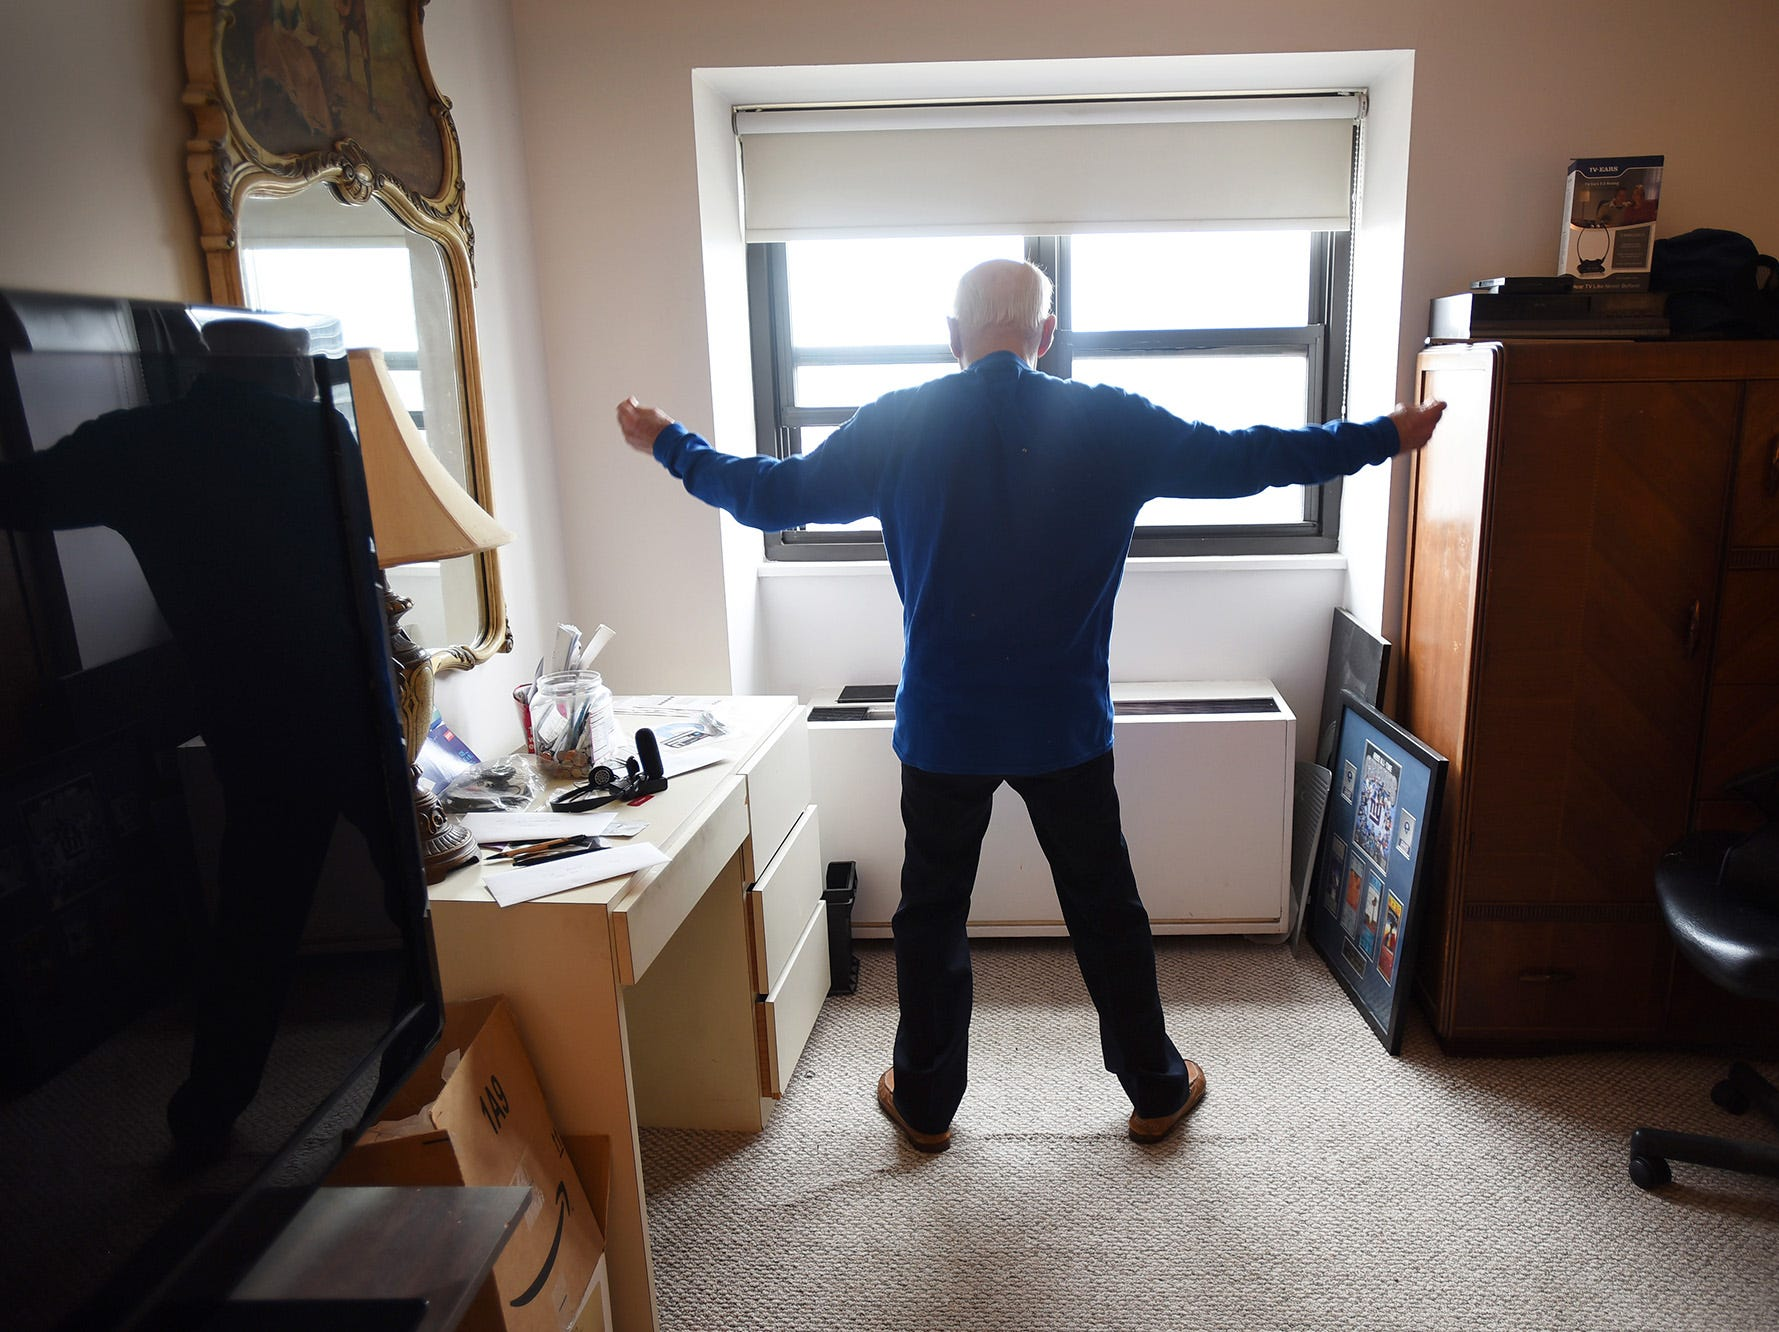 Sidney Gottlieb (age 92) of Cliffside Park, who has set a record in the Senior Olympics, exercises as he looks outside from his home in Cliffside Park on 06/13/18. Sidney runs, does 100 situps every day, pushups,etc lifts weights. He considers himself a role model for other seniors to stay active.